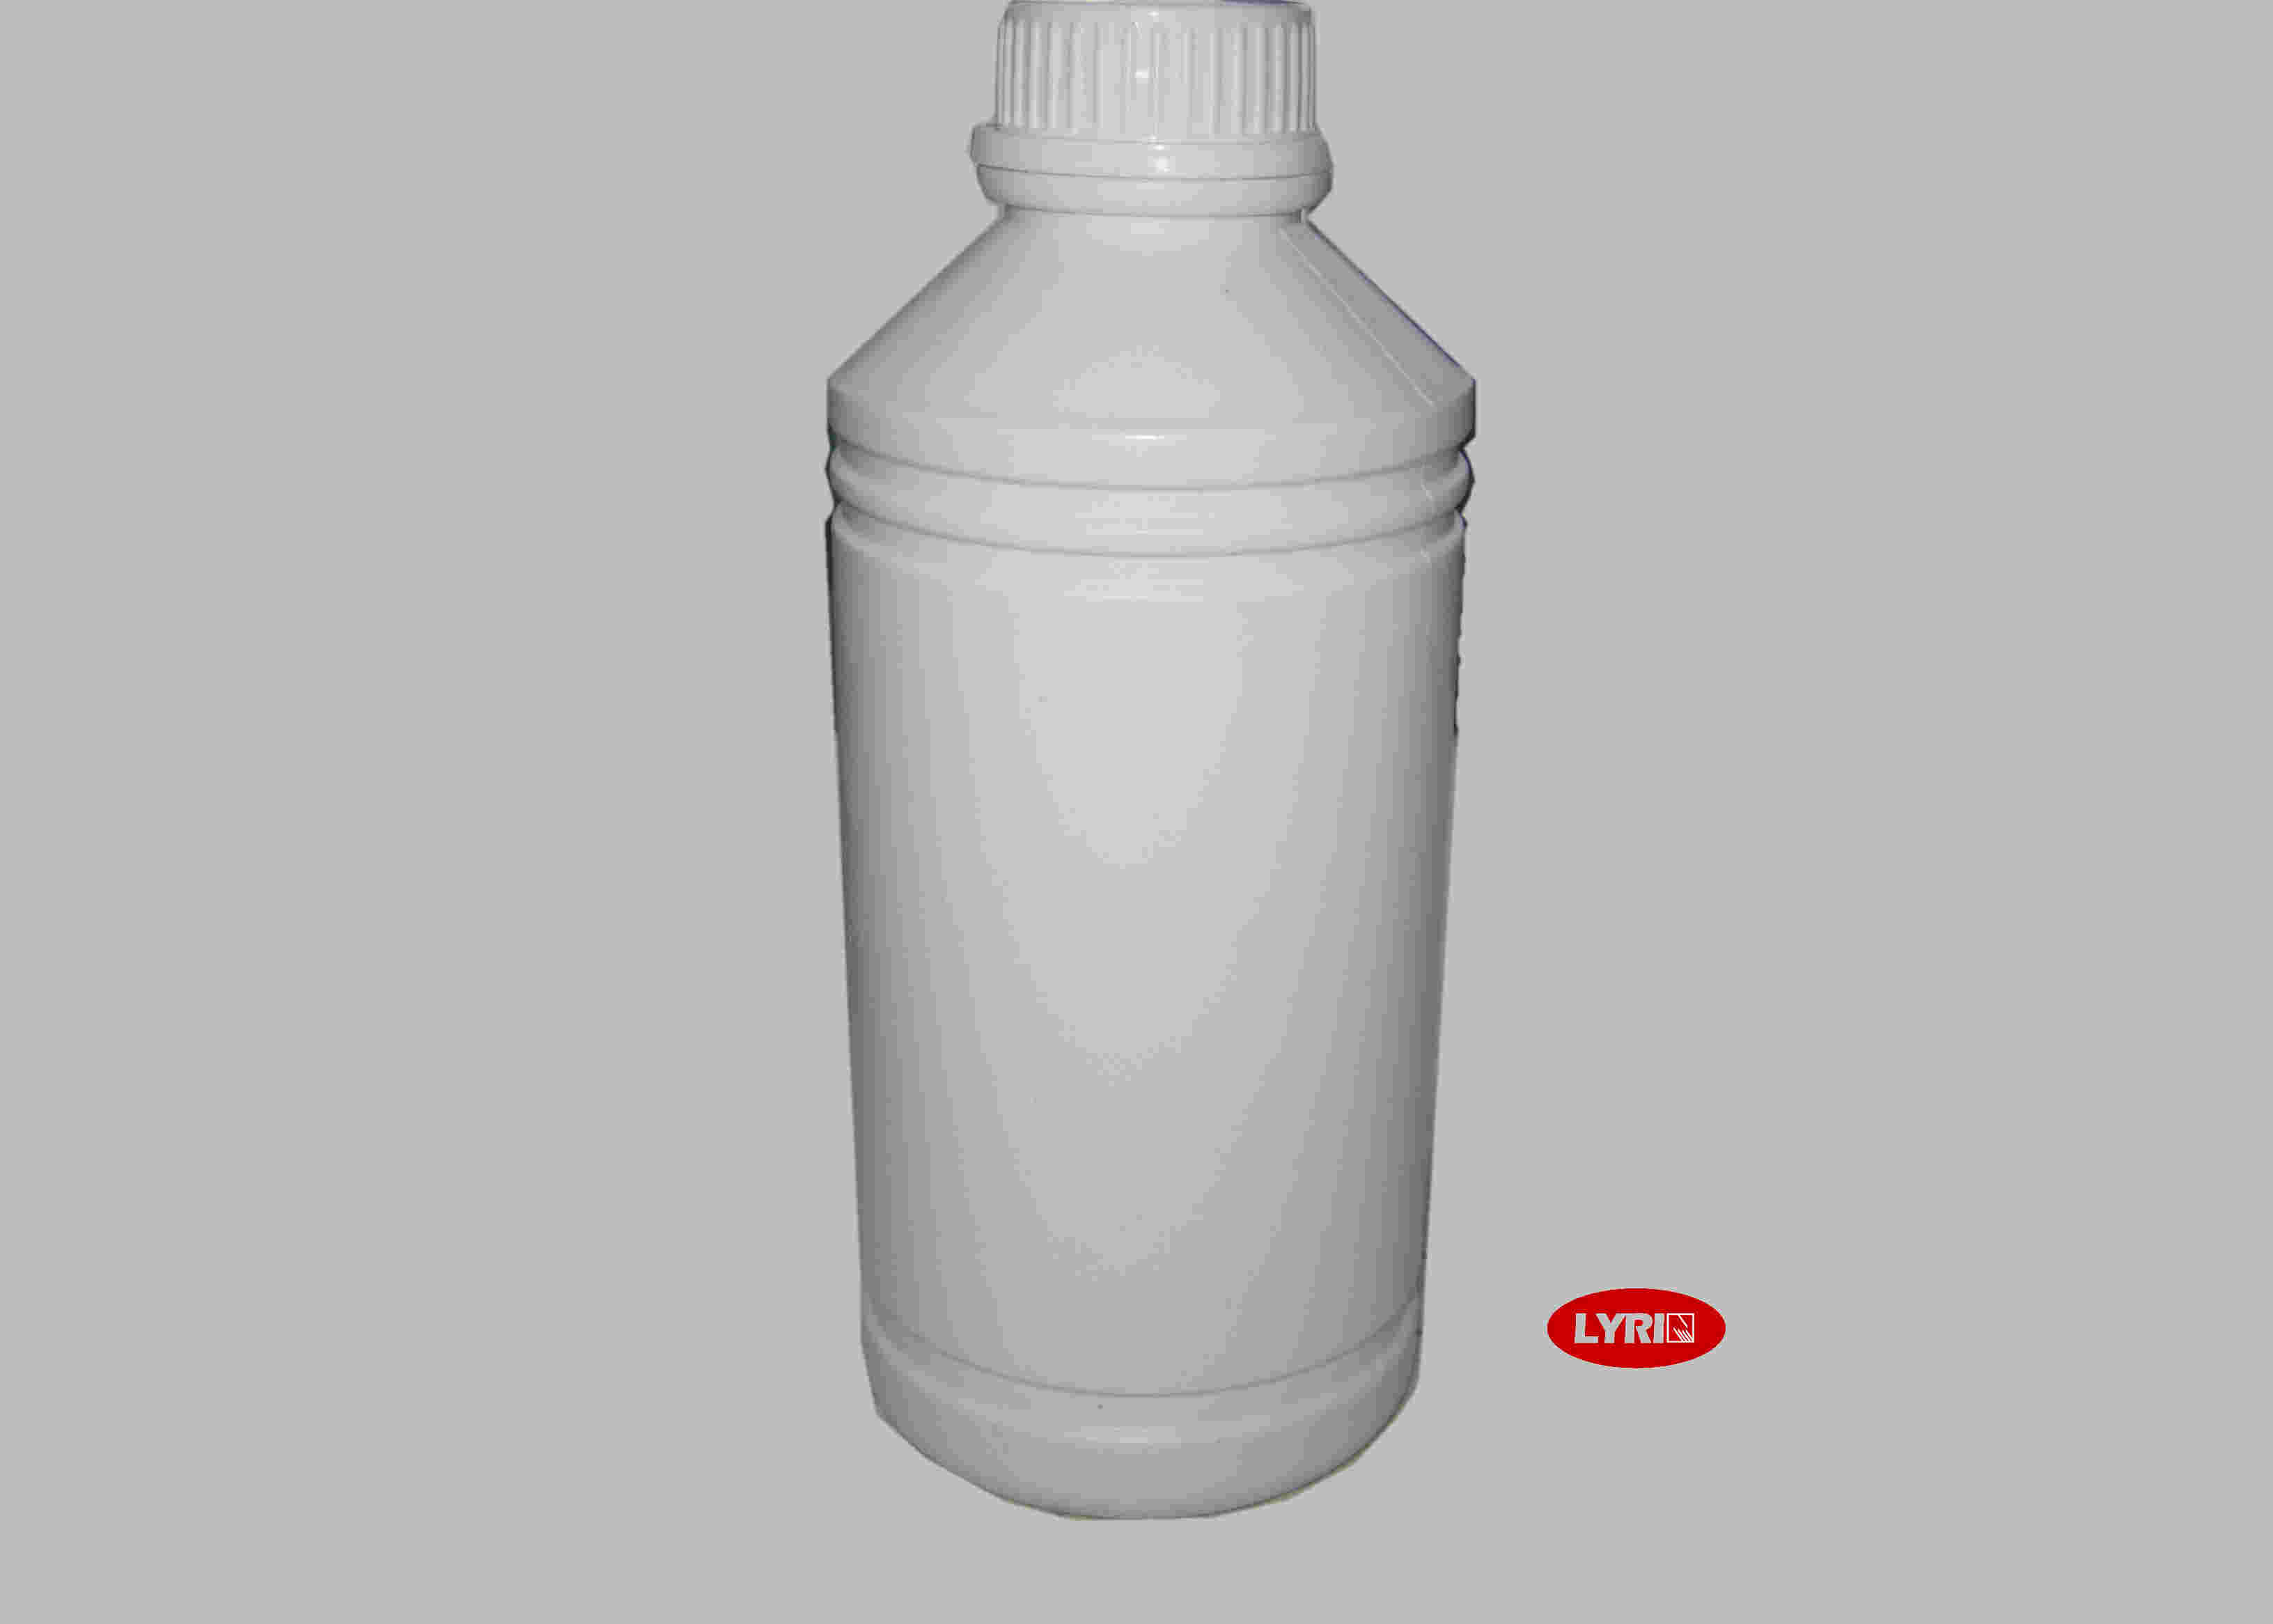 No Harmful Substance 100 % Purity Pdms Silicone Oil For Sewing Thread Lubricant